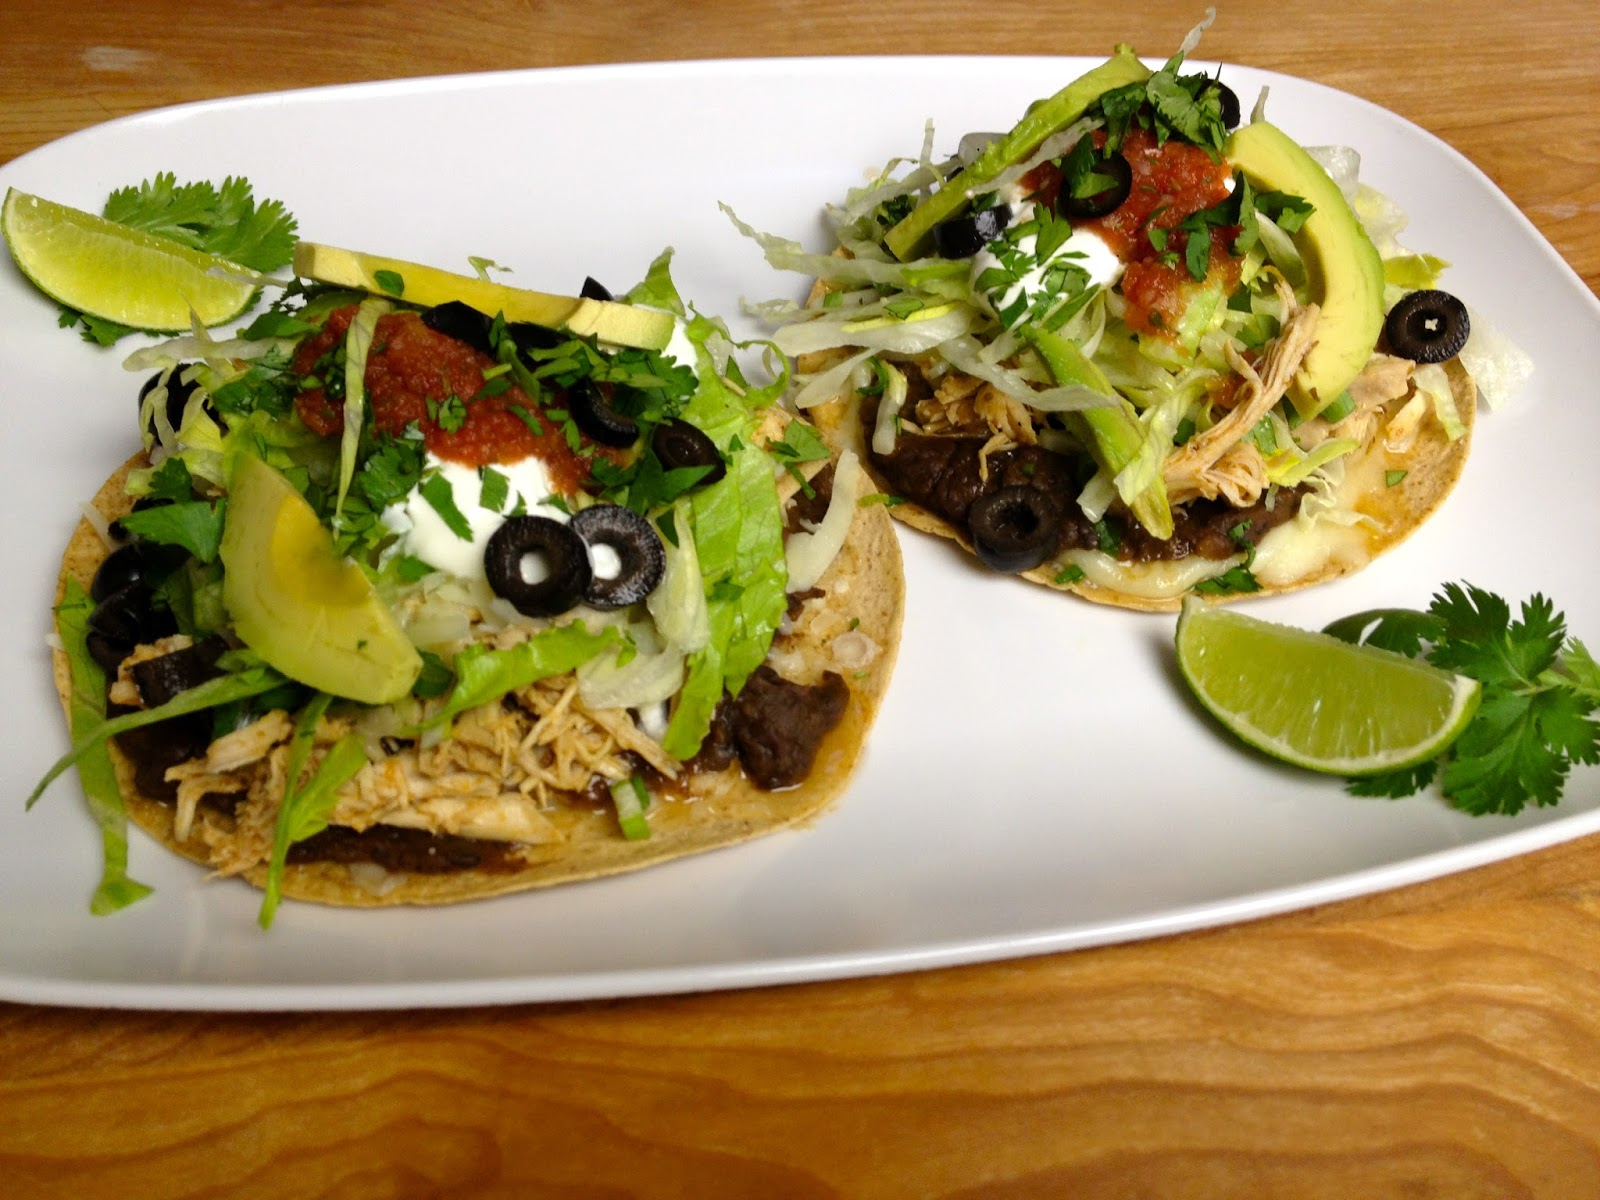 Foodie Journey: Shredded Chicken Tostadas on Home-Baked ...